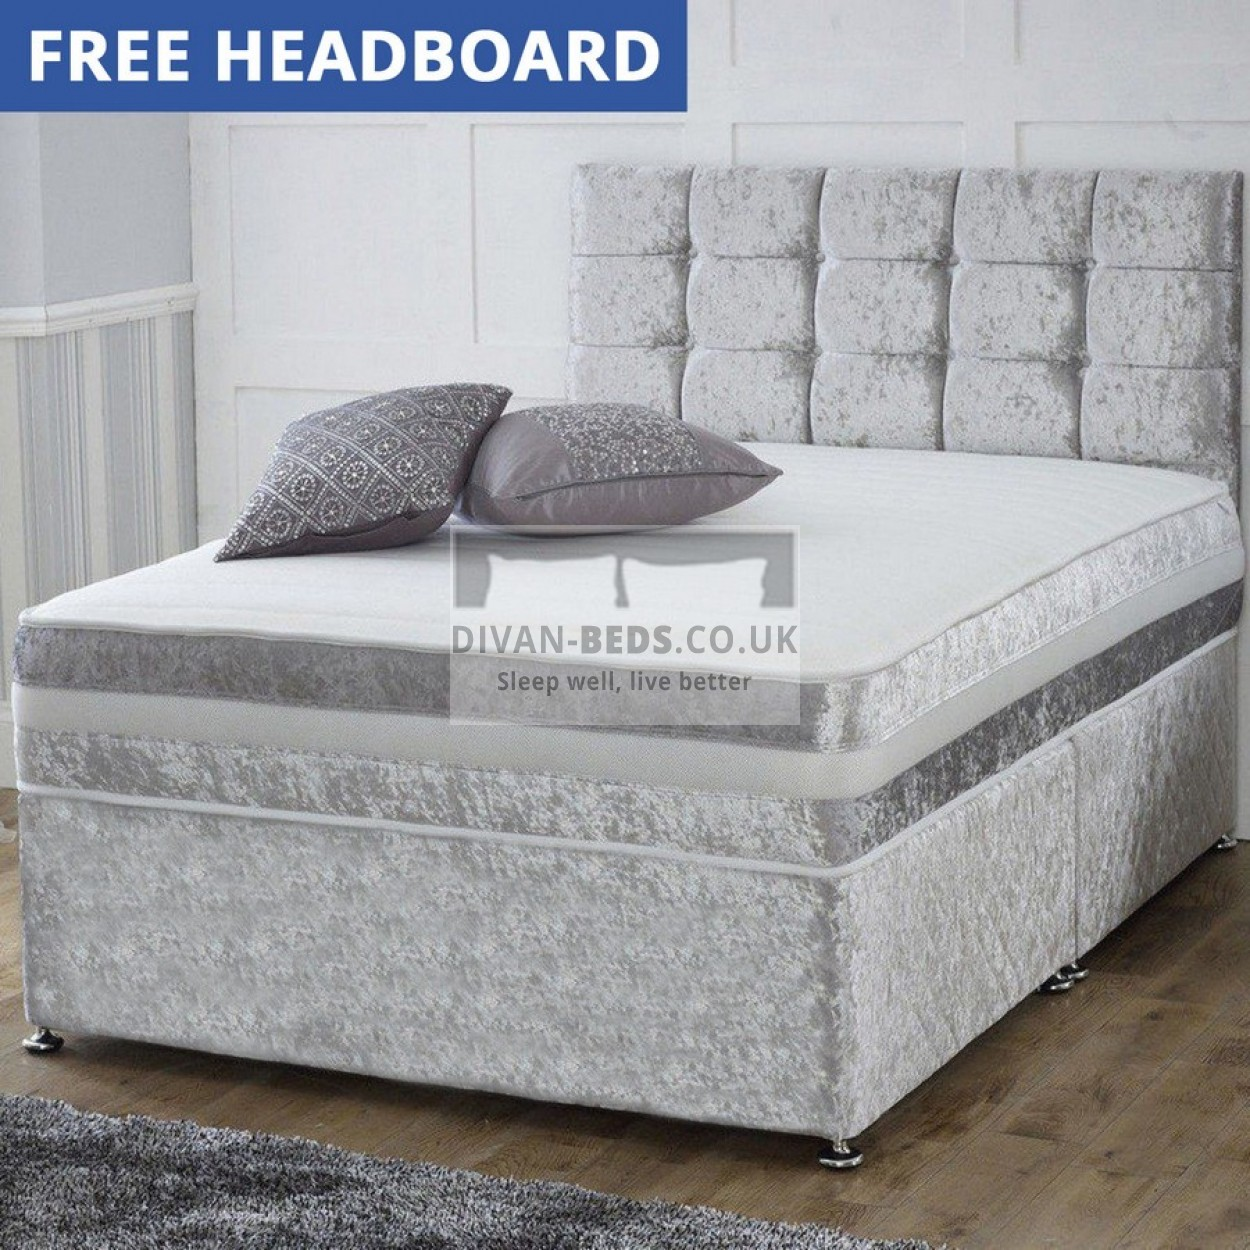 Patrick Crushed Velvet Divan Bed With 1500 Pocket Orthopaedic Mattress Guaranteed Cheapest